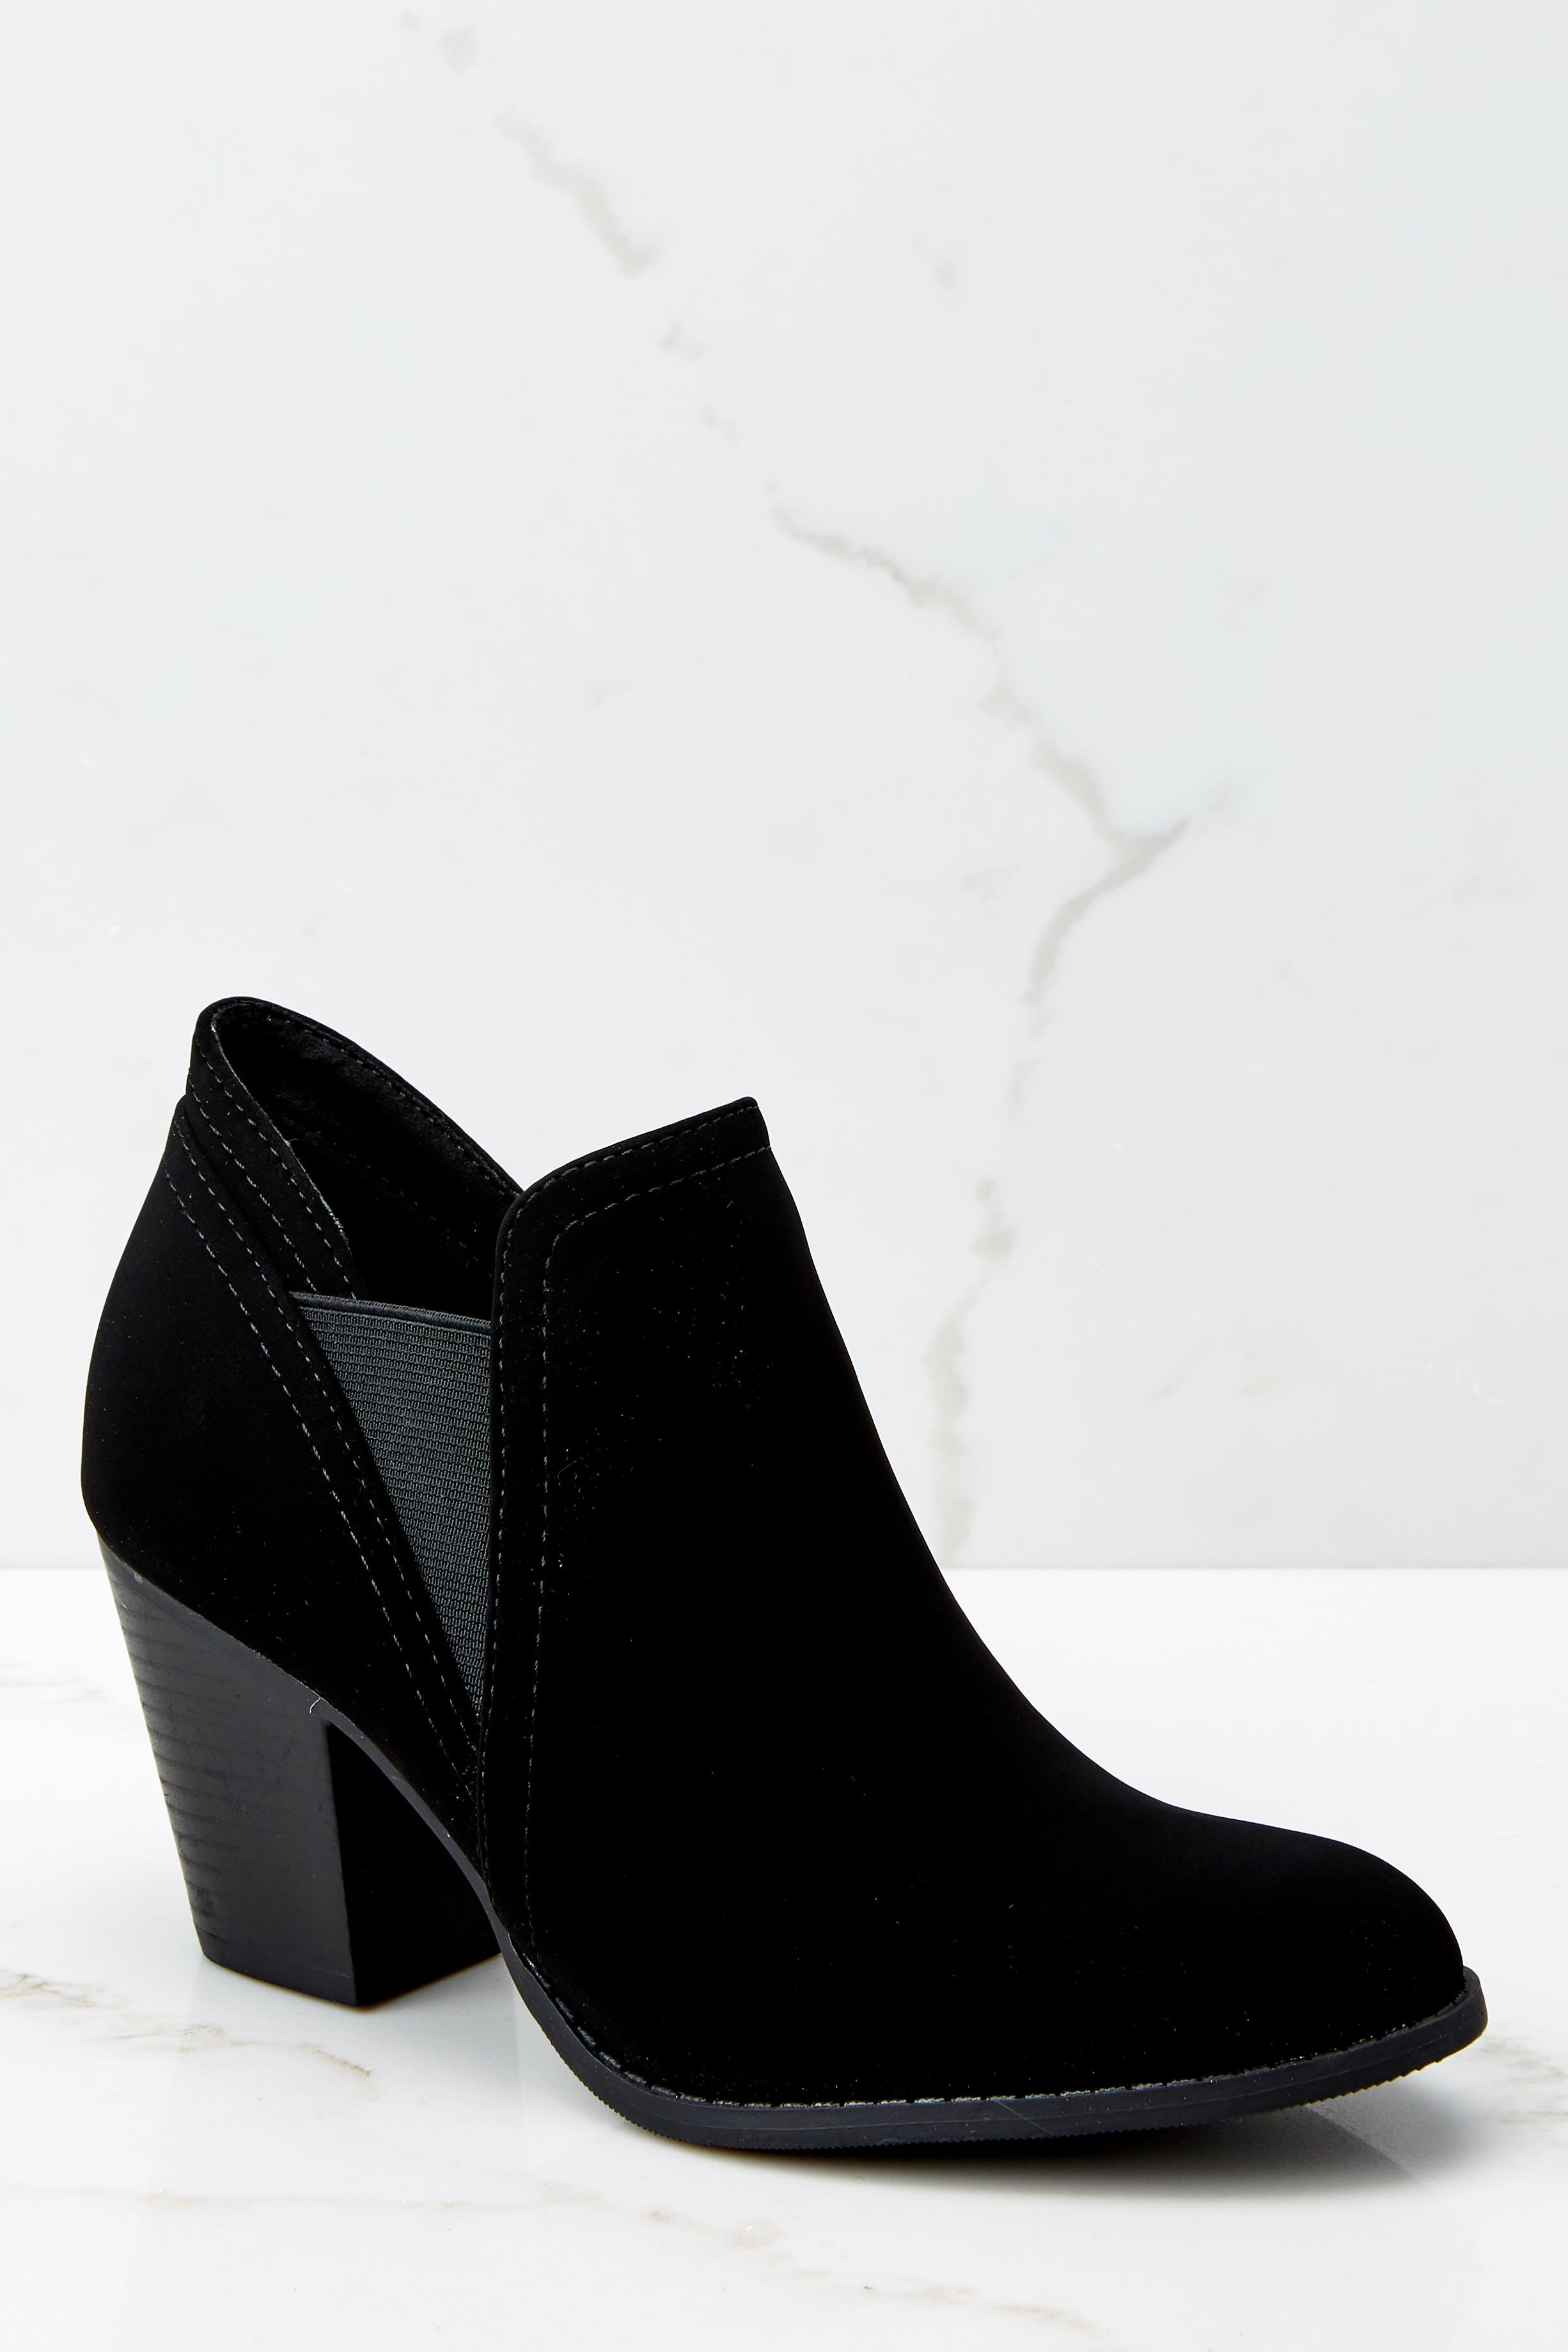 Make A Path Black Ankle Booties